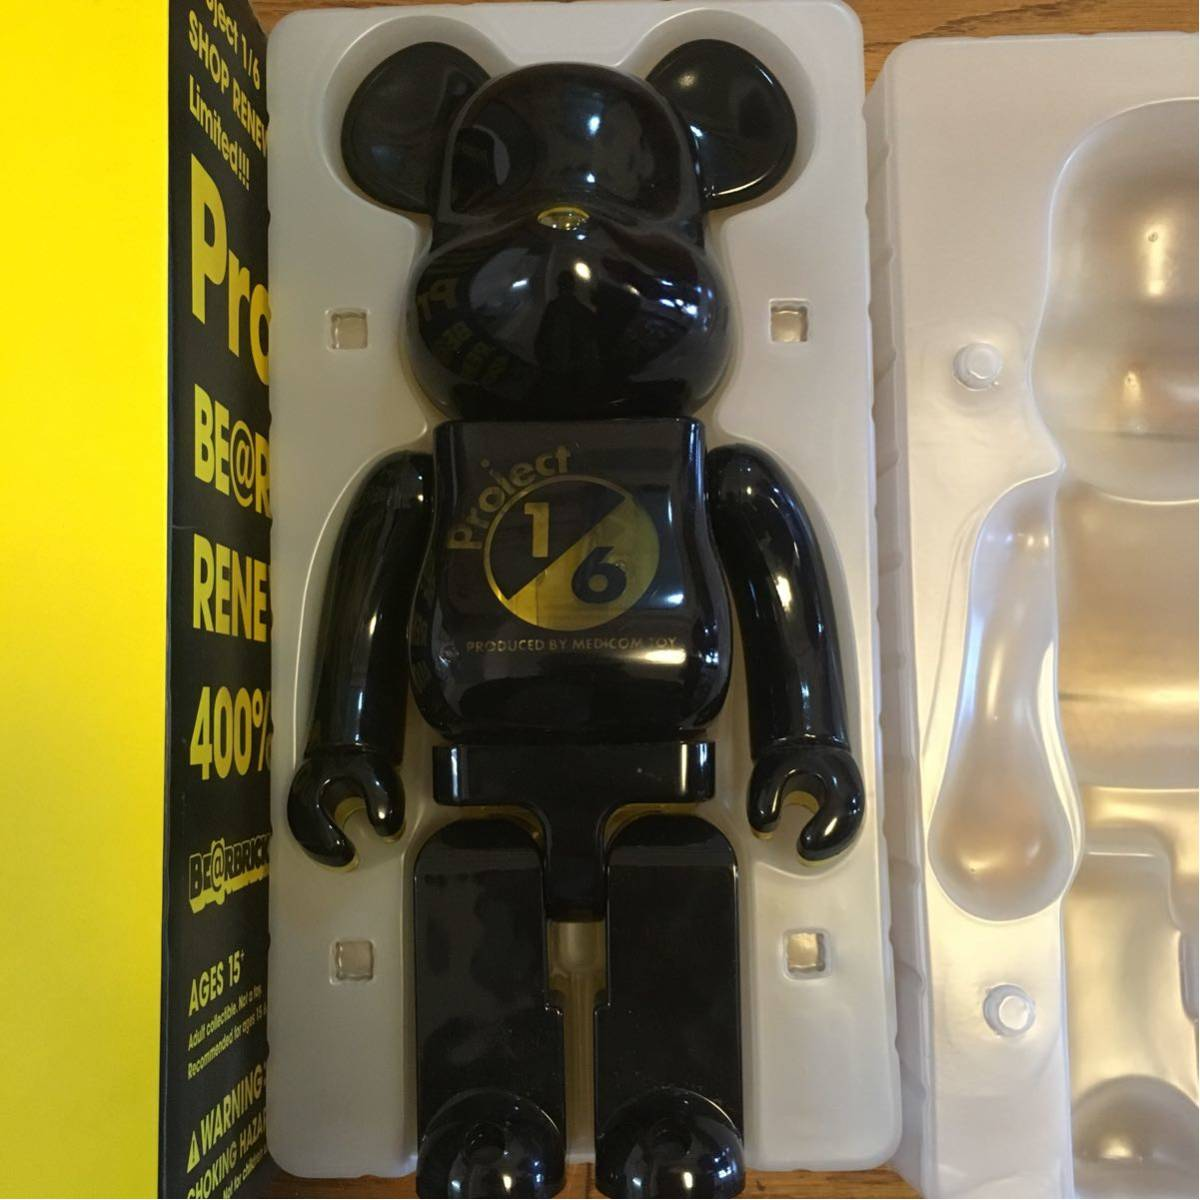 BE@RBRICK Project1/6 BE@RBRICK RENEWAL ver 400% ベアブリック 1/6計画 1/6プロジェクト リニューアル_画像5